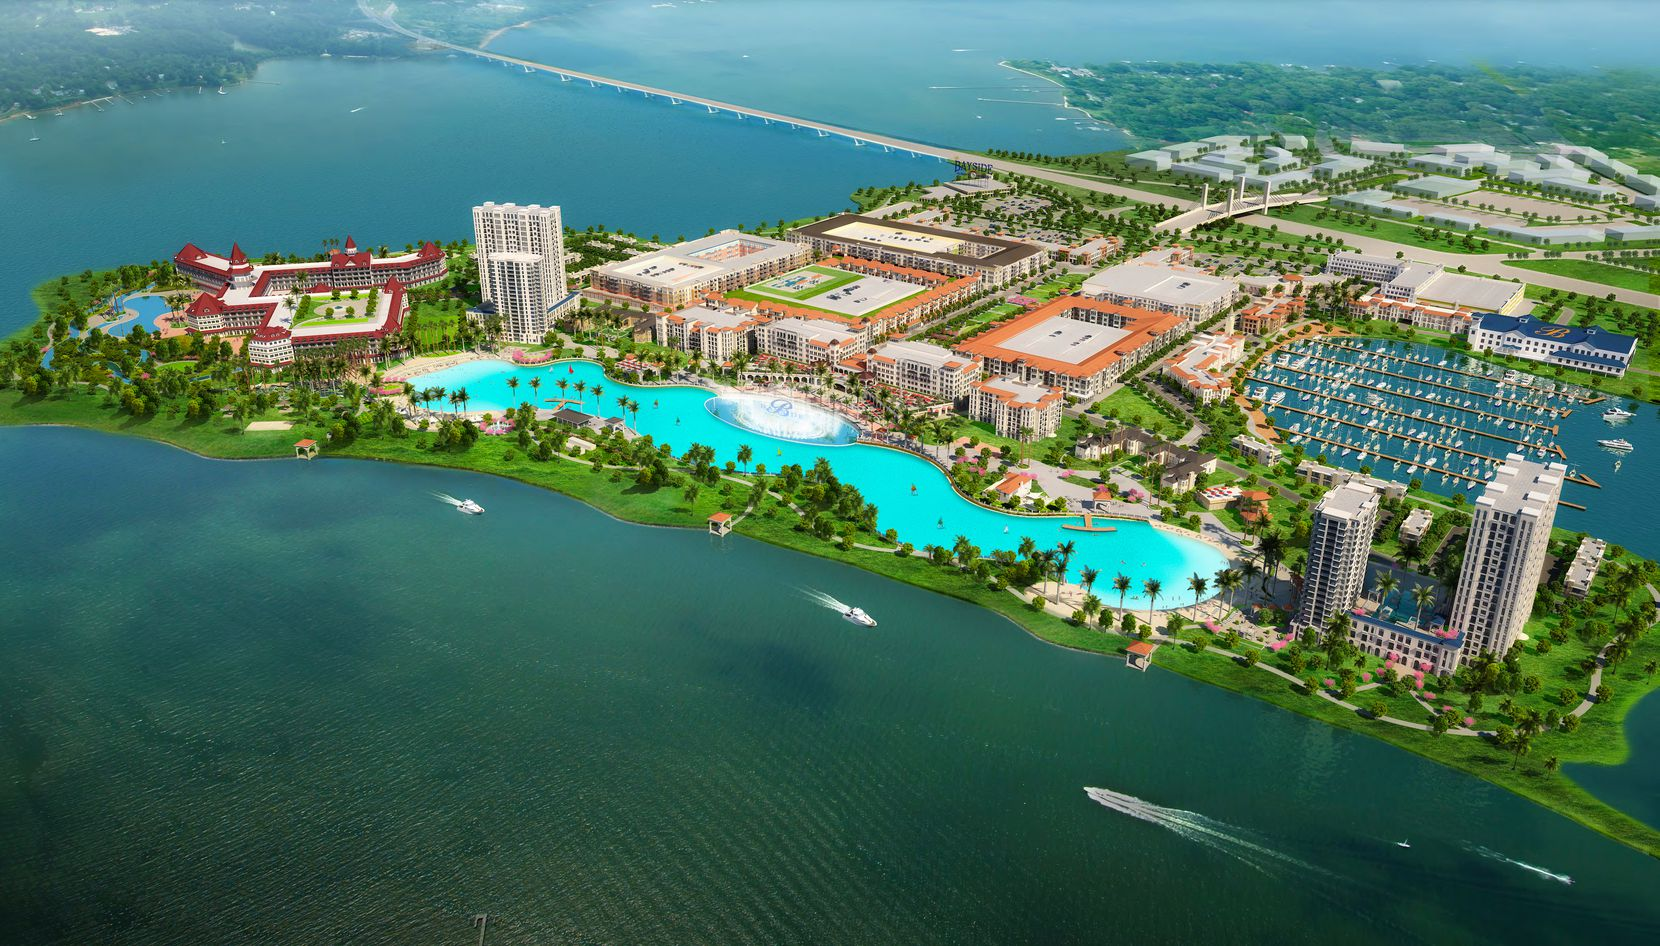 The previous development planned for the site had a larger lagoon but no wave pool.